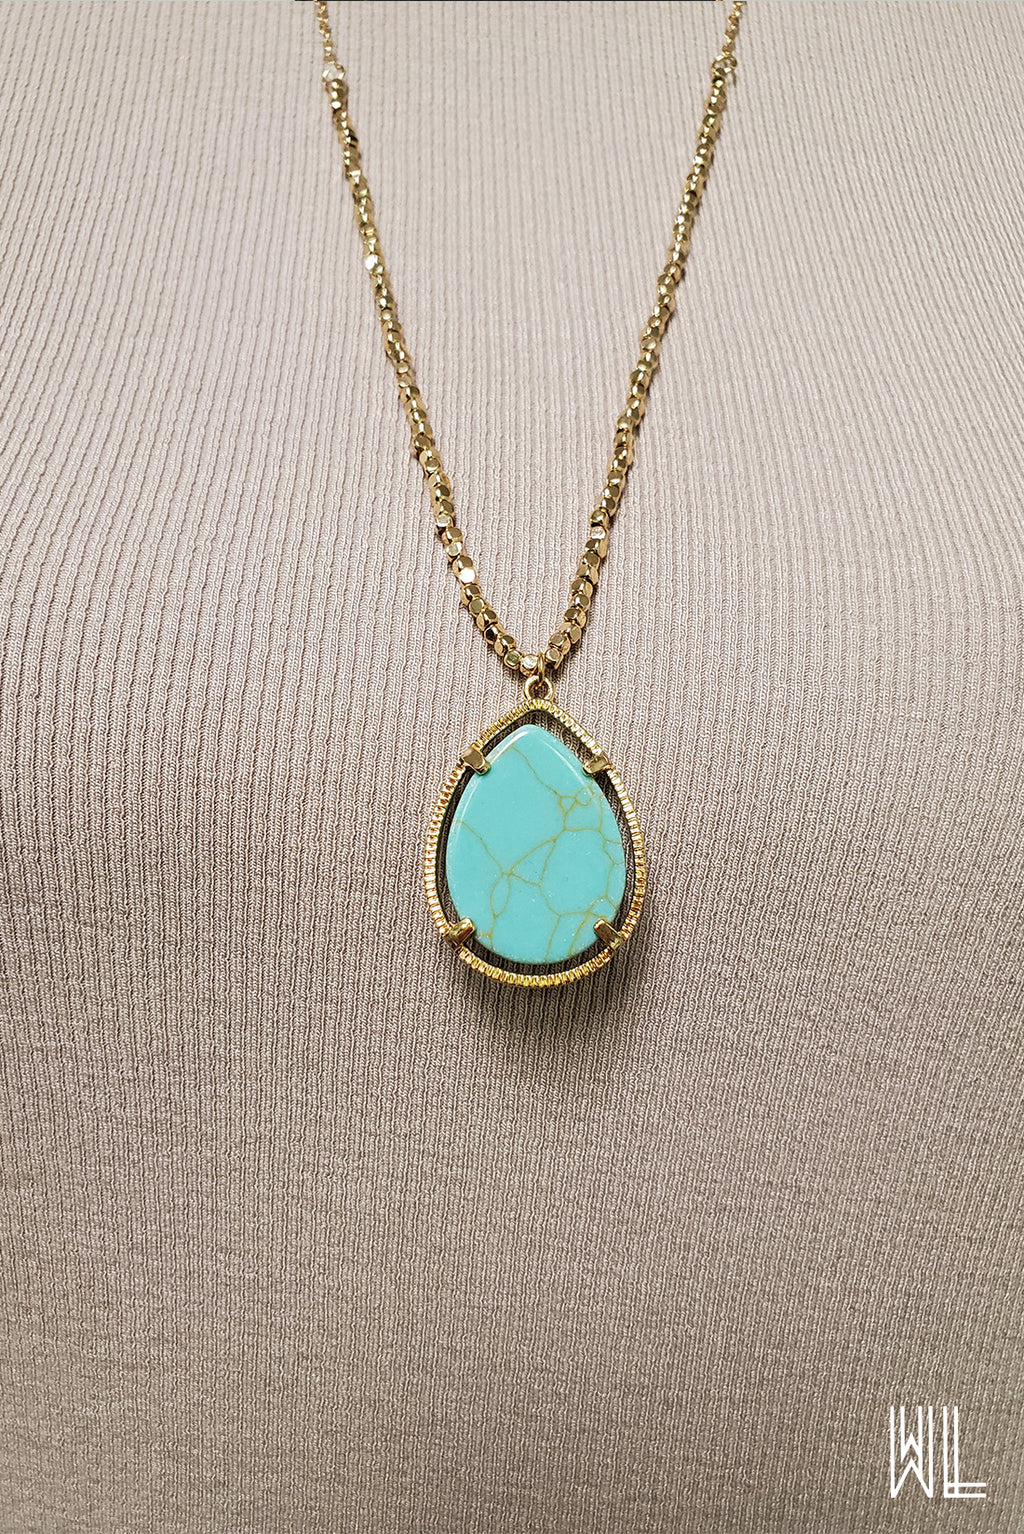 Teardrop Stone Pendant Necklace